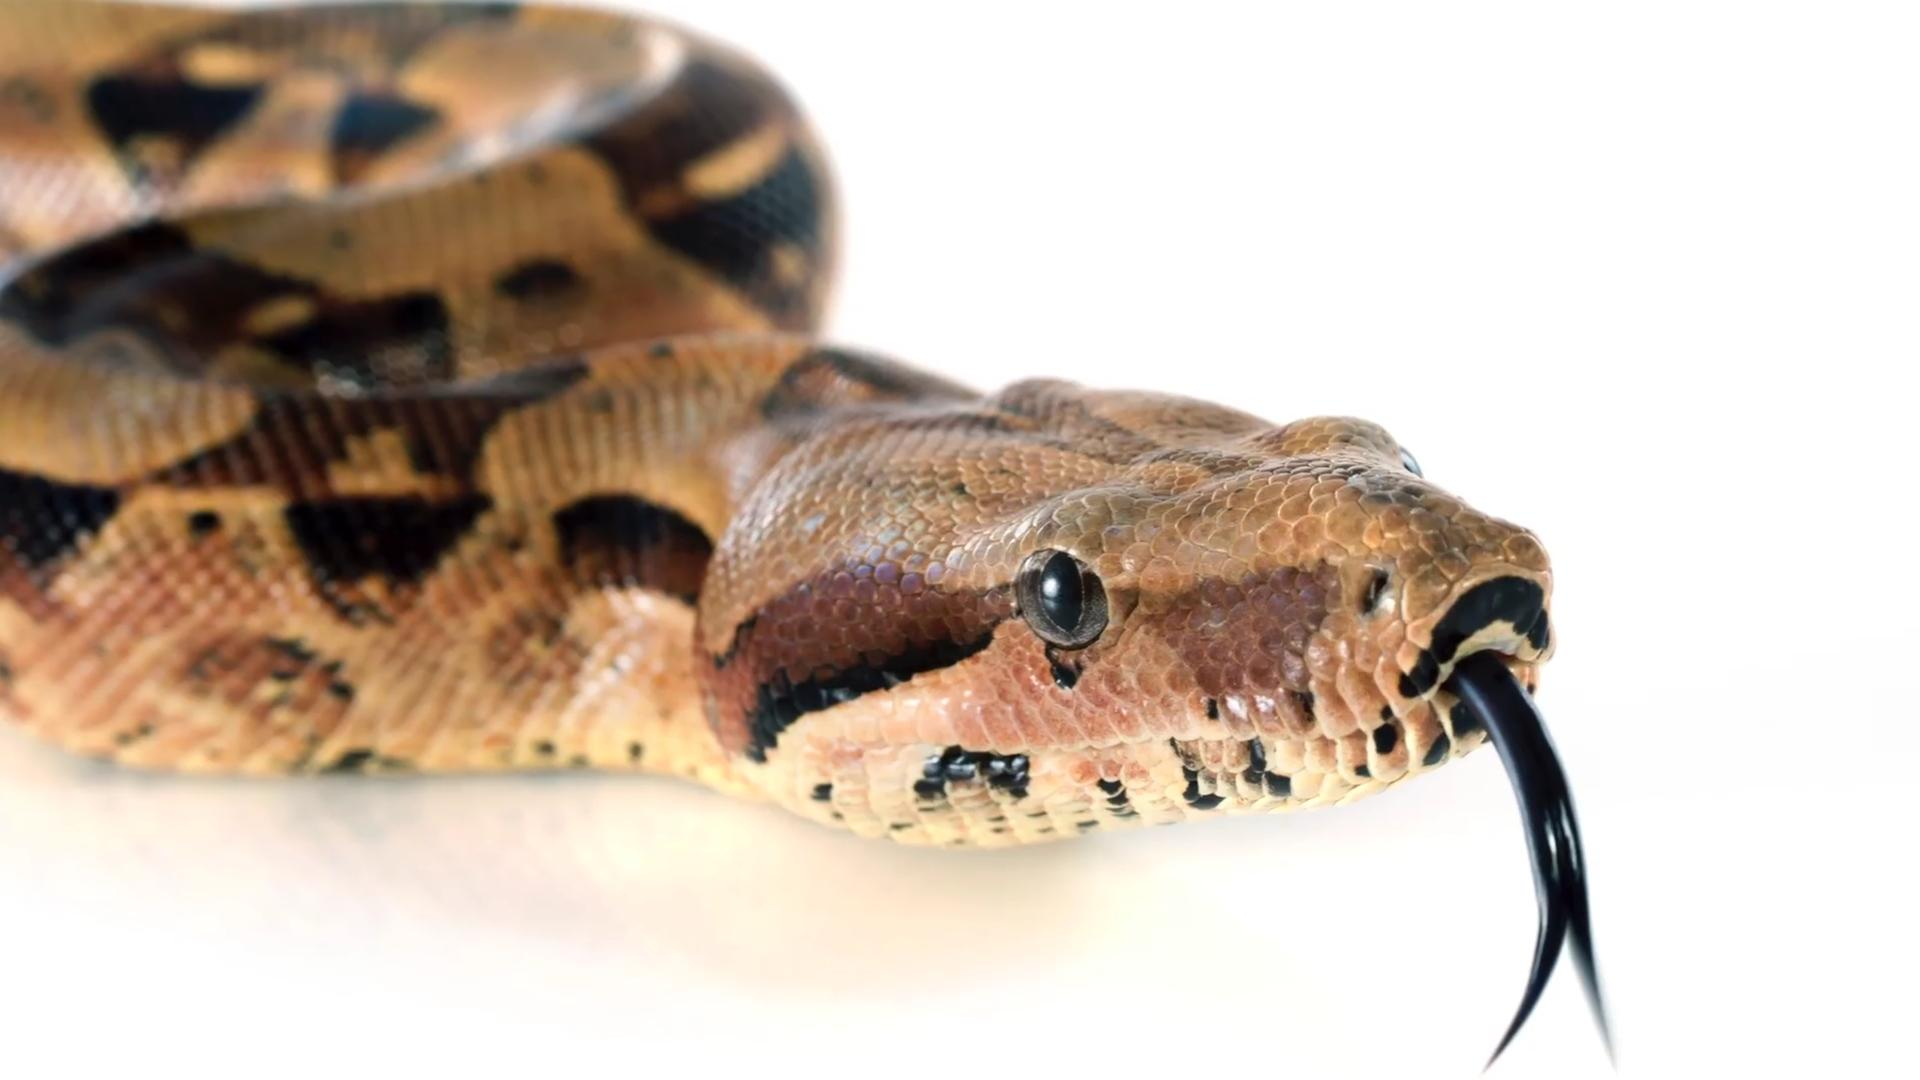 Man brings snake into restaurant, says it's a service animal